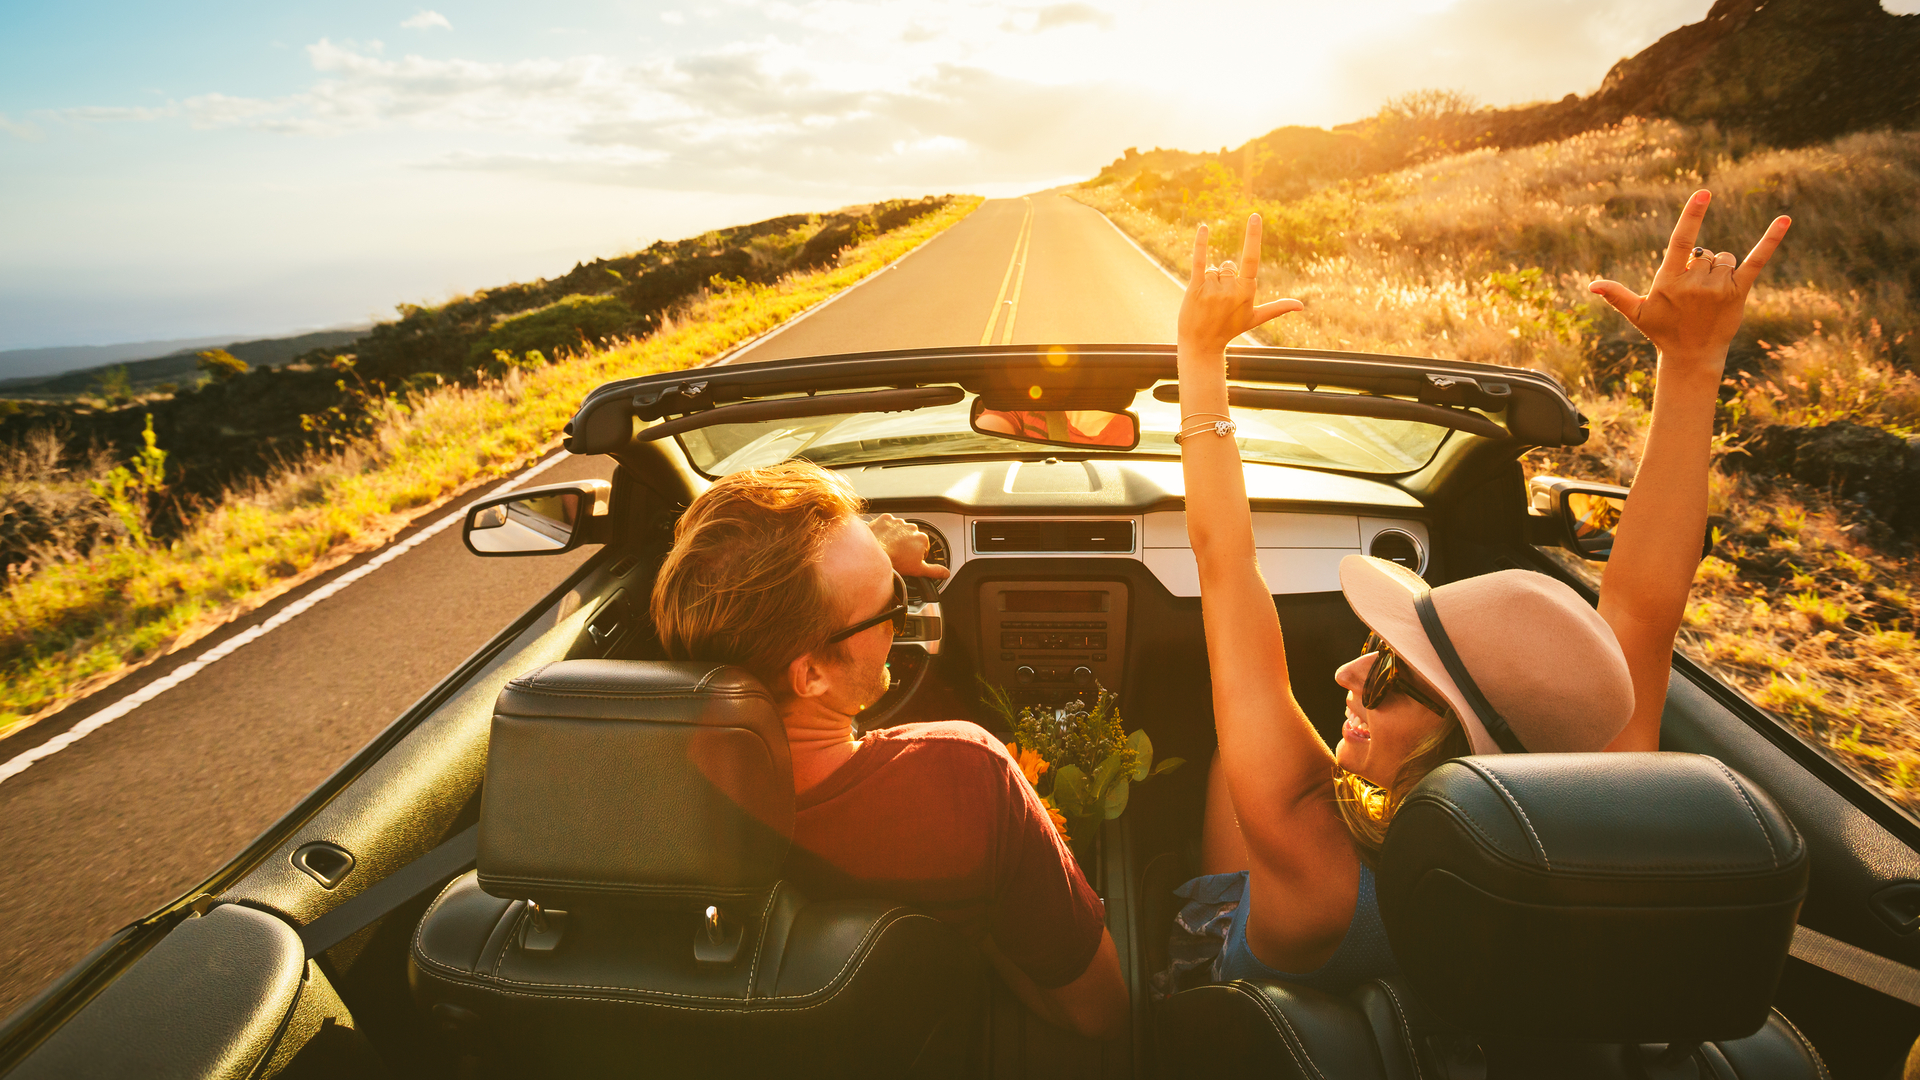 10 Road Trip Essentials: How to Stay Safe, Sane, and on Track on the Road